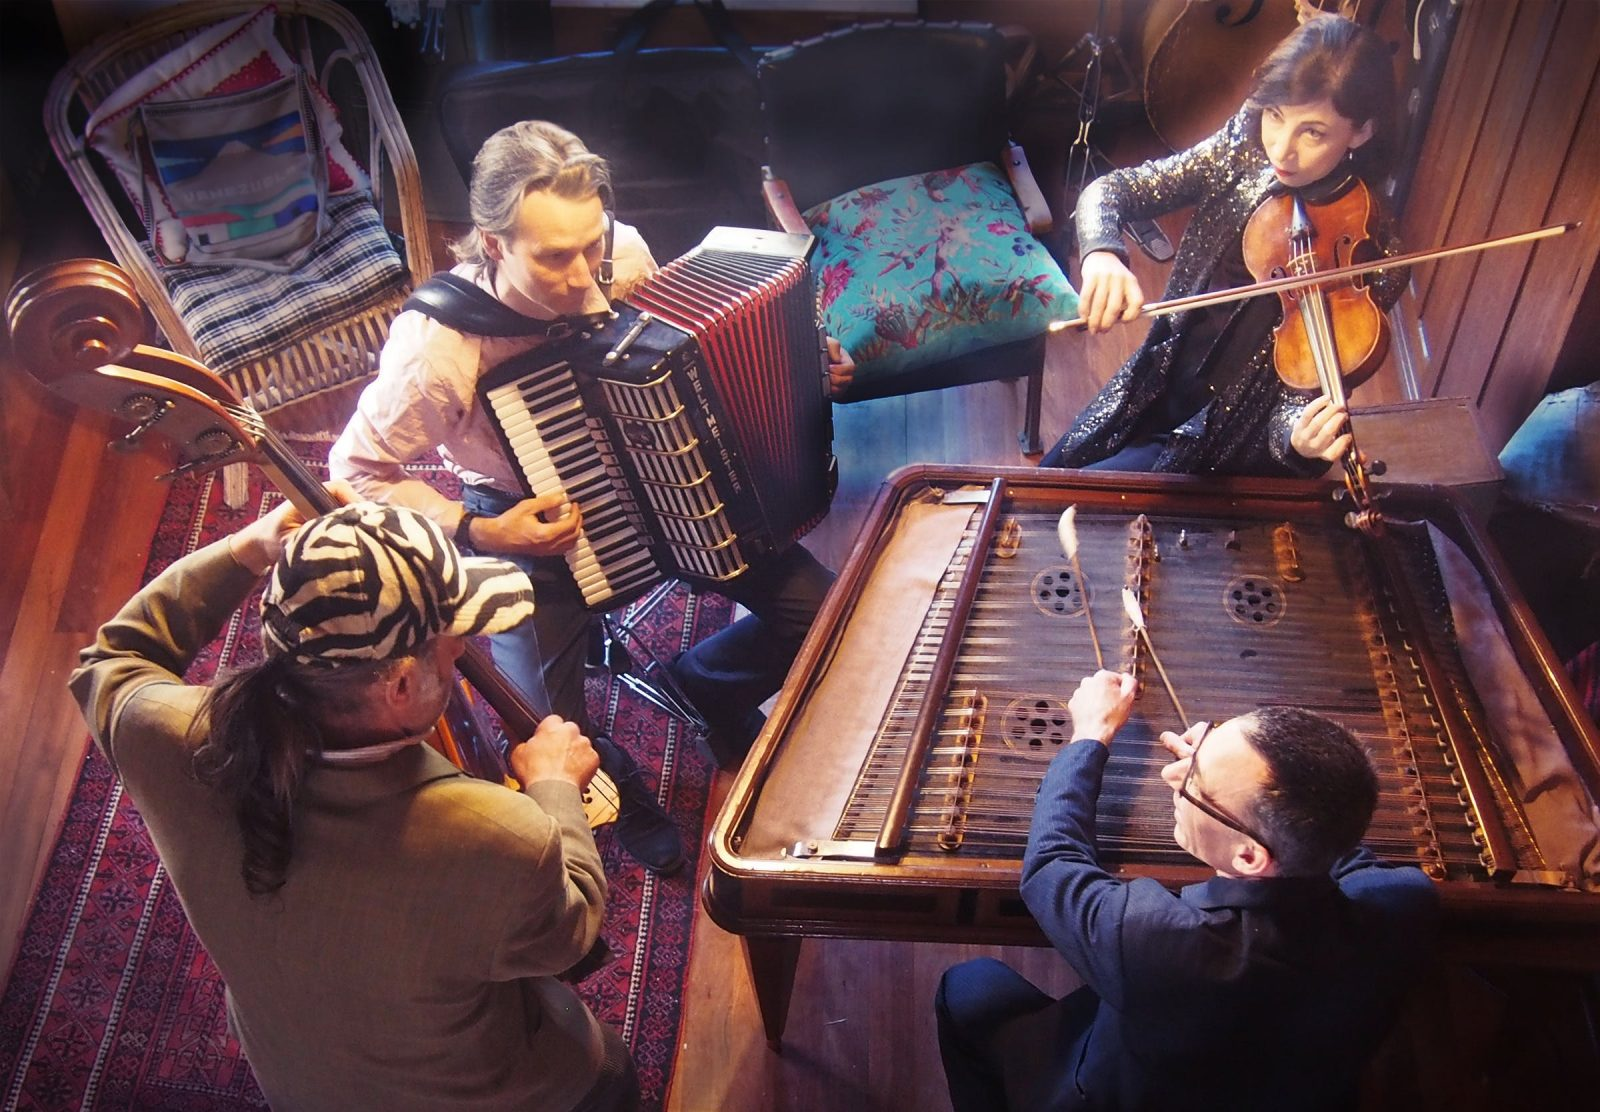 Photograph of the Super Rats Romanian band showing the unusual, many stringed cimbalom instrument